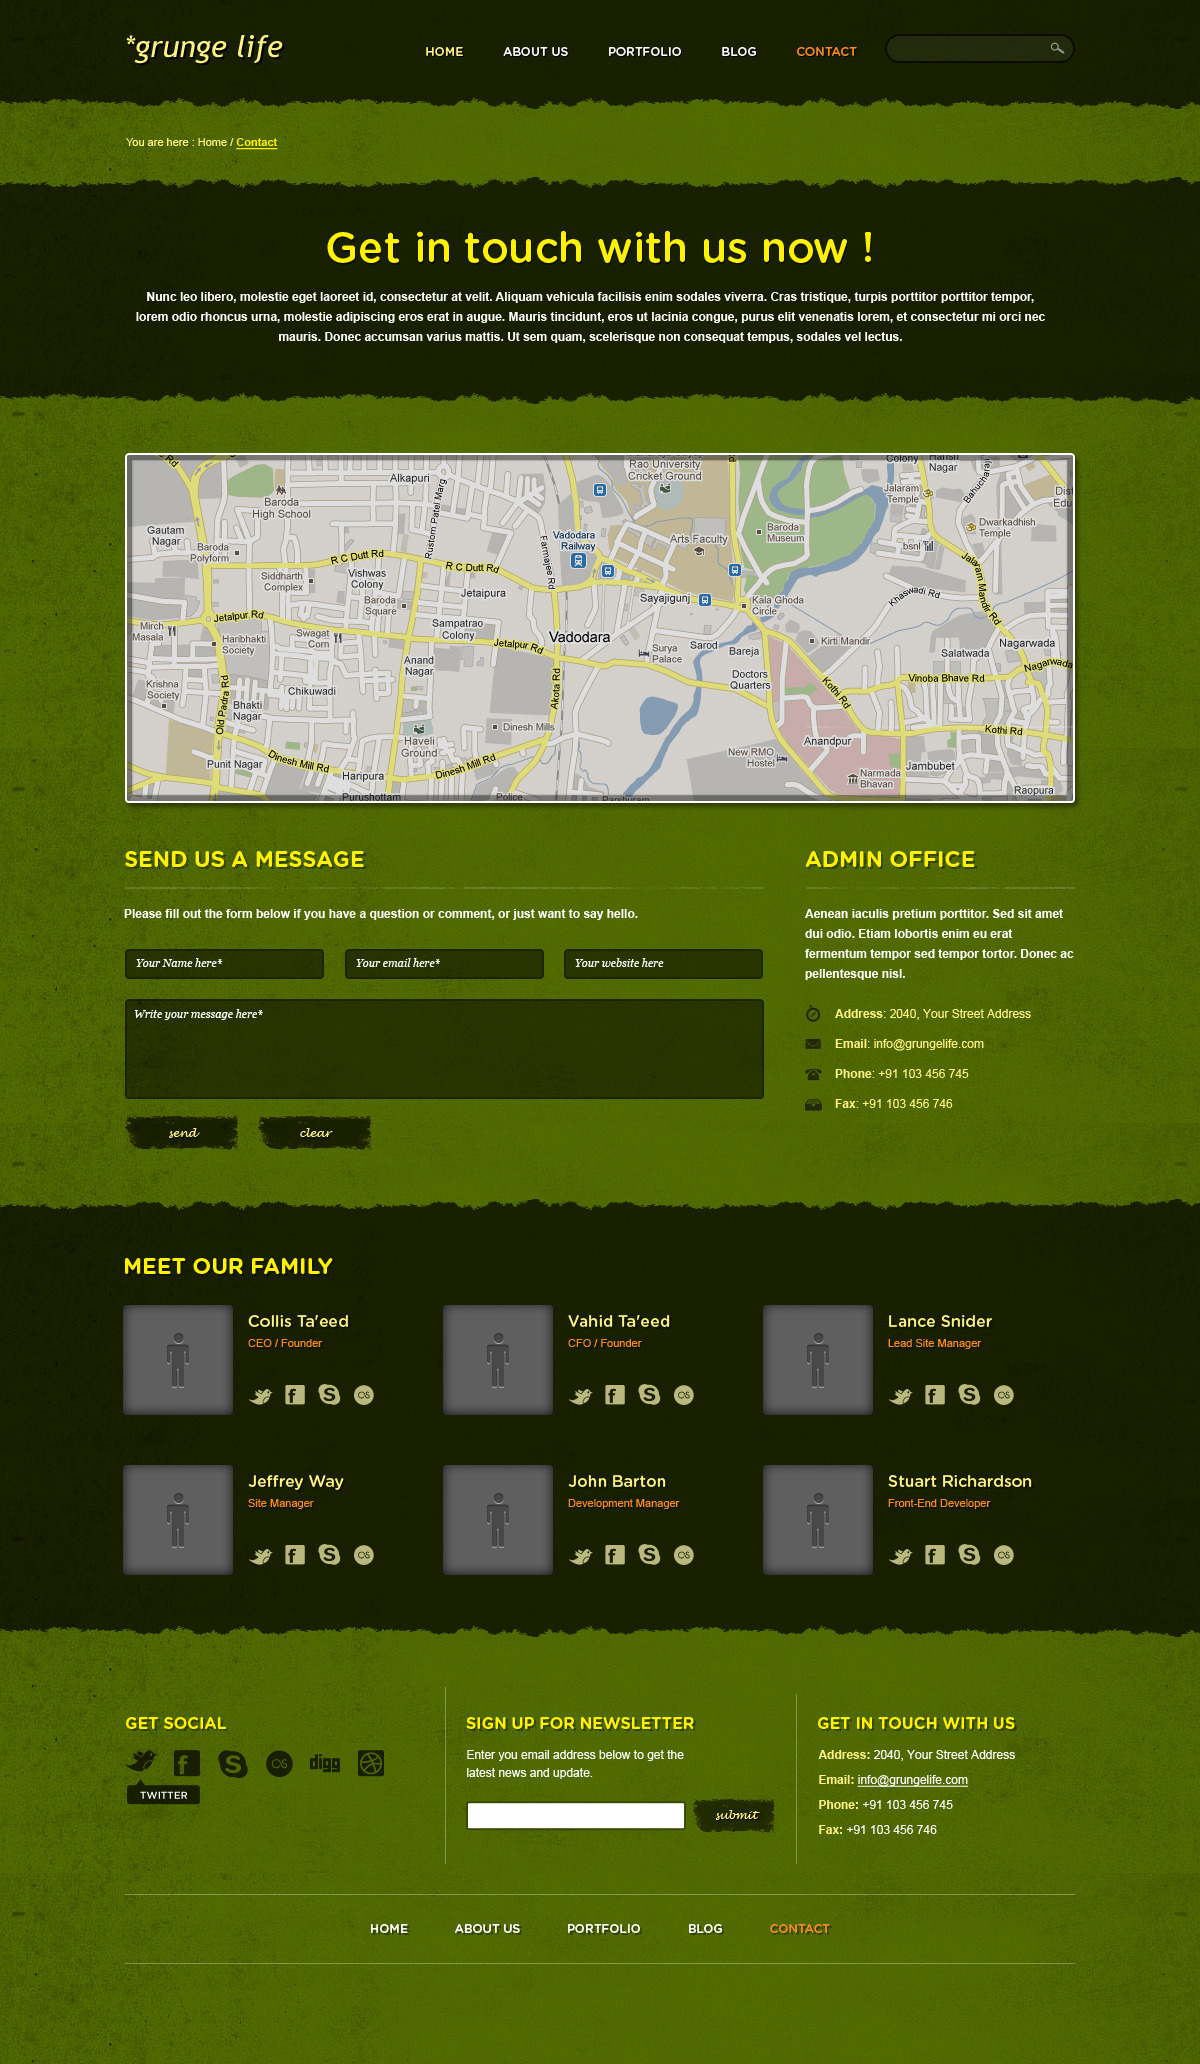 Grunge Life - An Exclusive PSD Theme - Grunge Life is a professionally designed template. Ideal for any small or big design studio that wants to appear professional and modern.